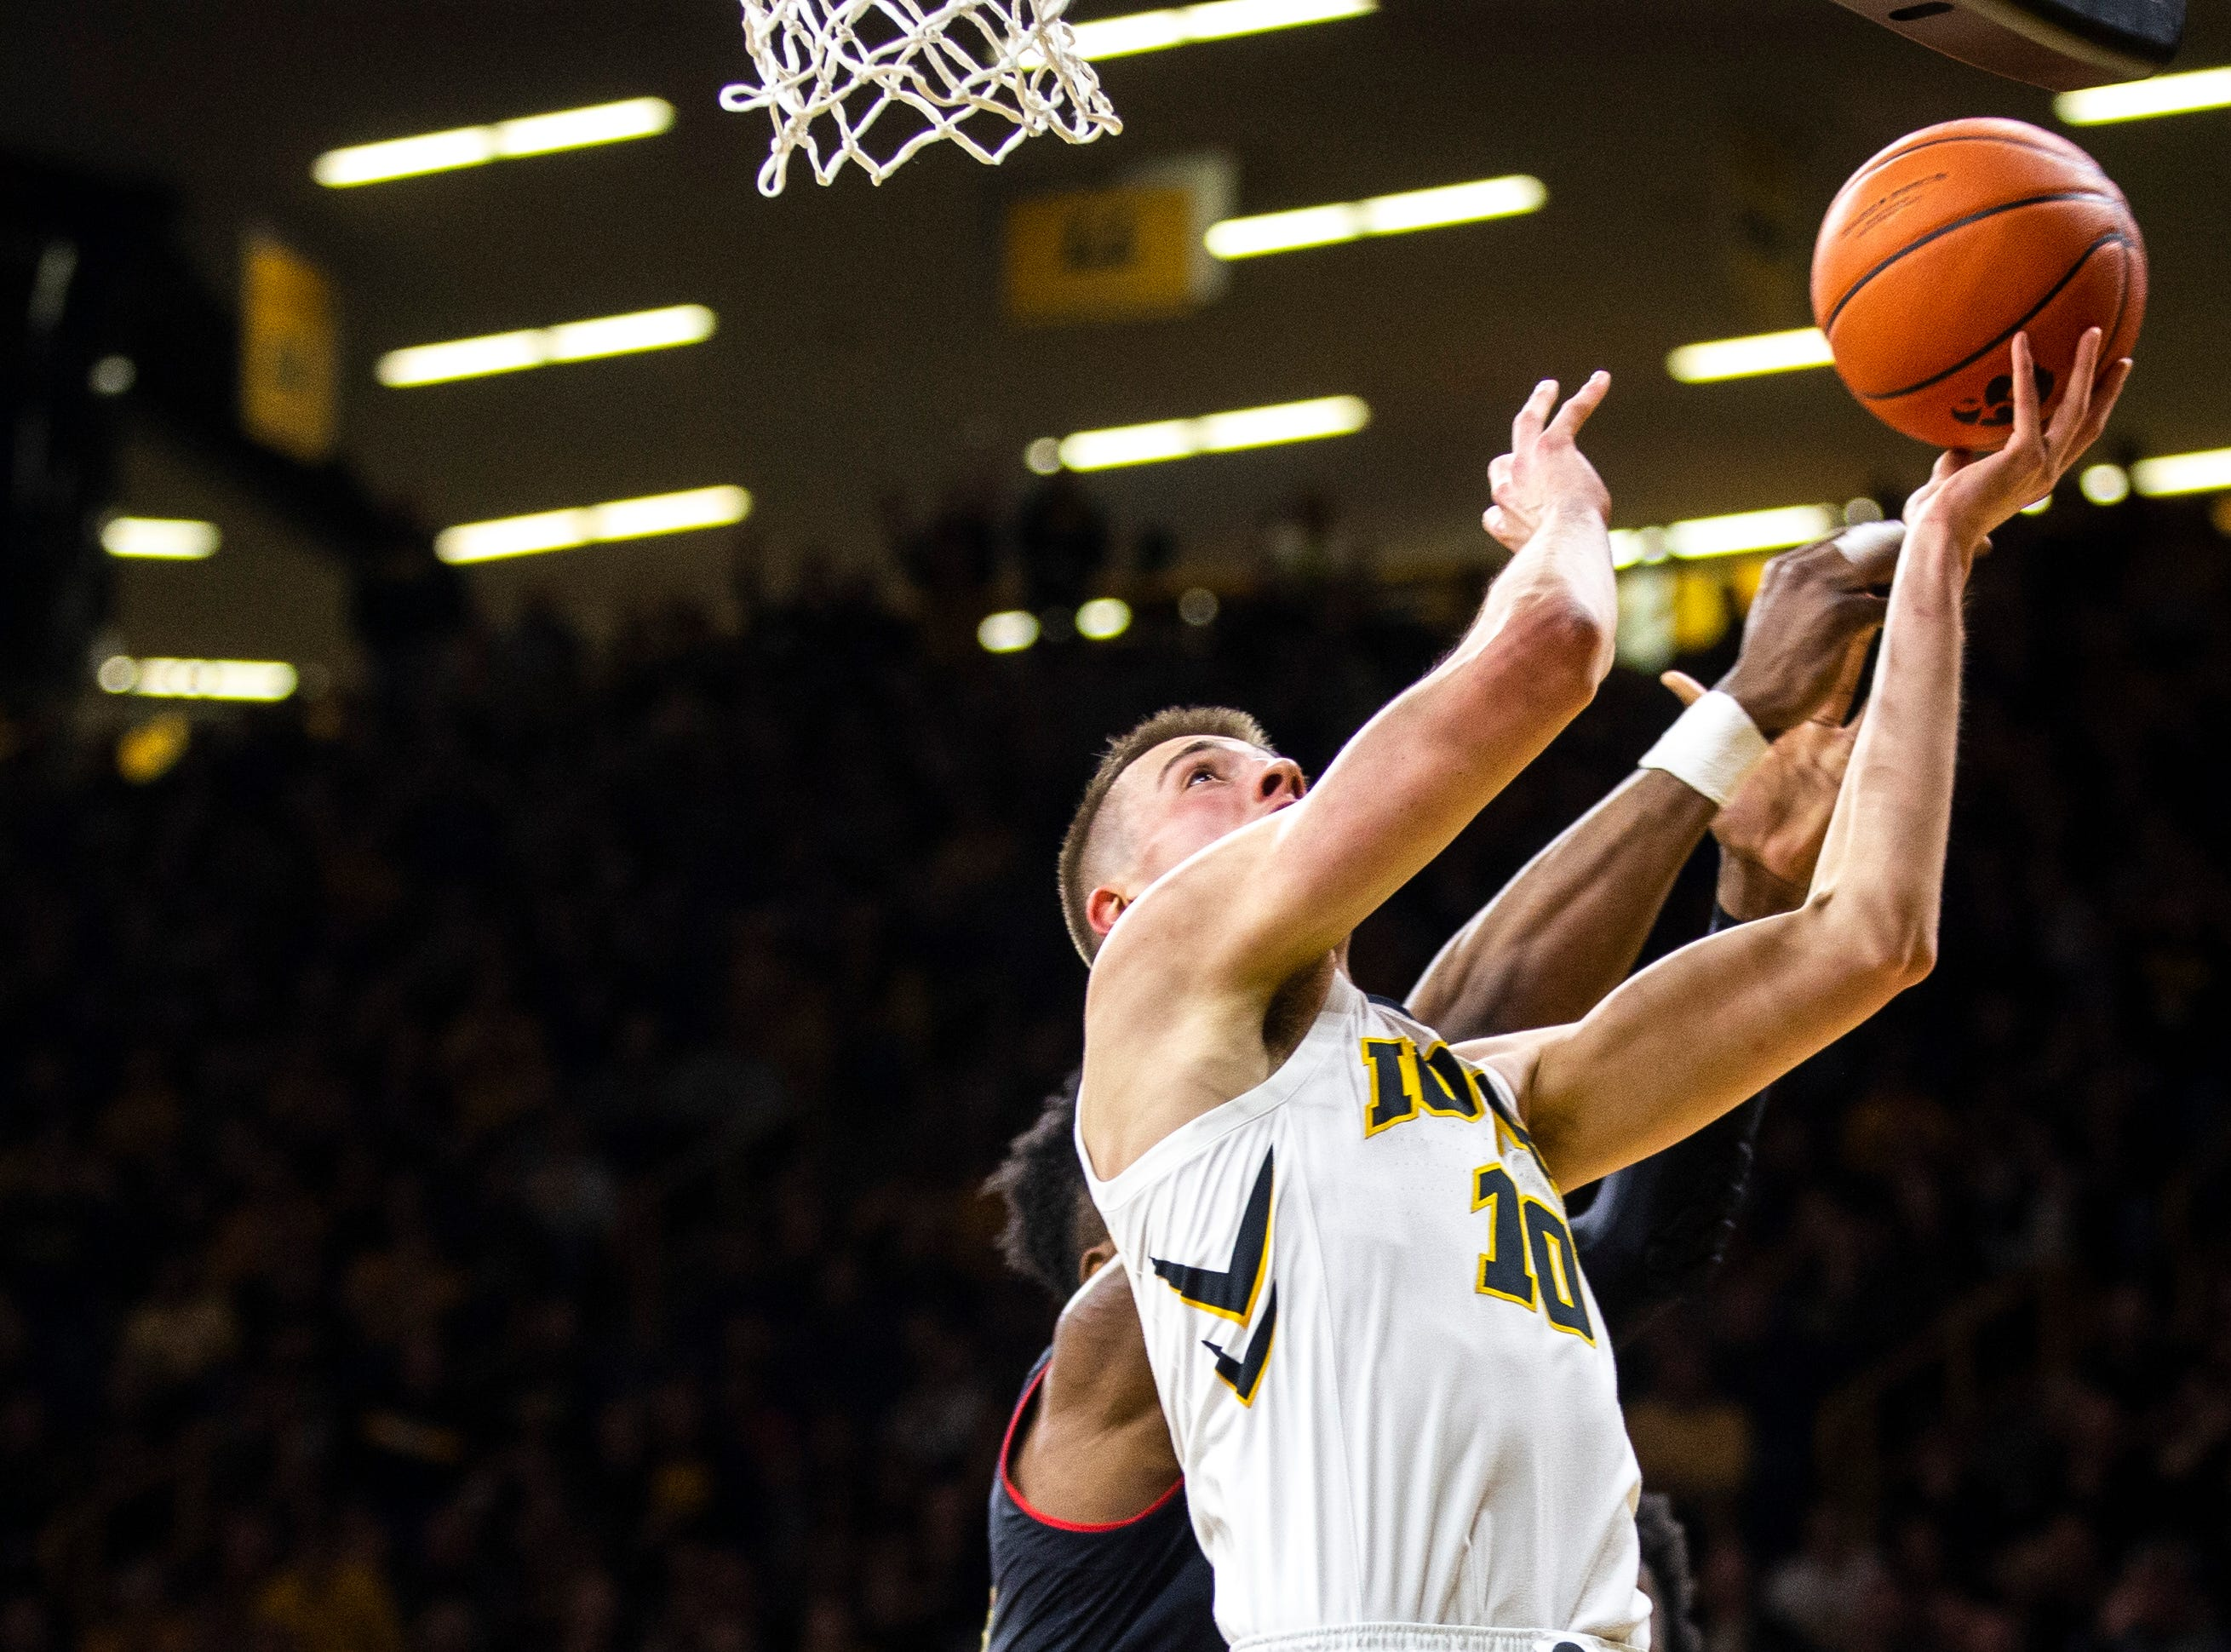 Iowa guard Joe Wieskamp (10) attempts a basket during a NCAA Big Ten Conference men's basketball game on Tuesday, Feb. 19, 2019 at Carver-Hawkeye Arena in Iowa City, Iowa.